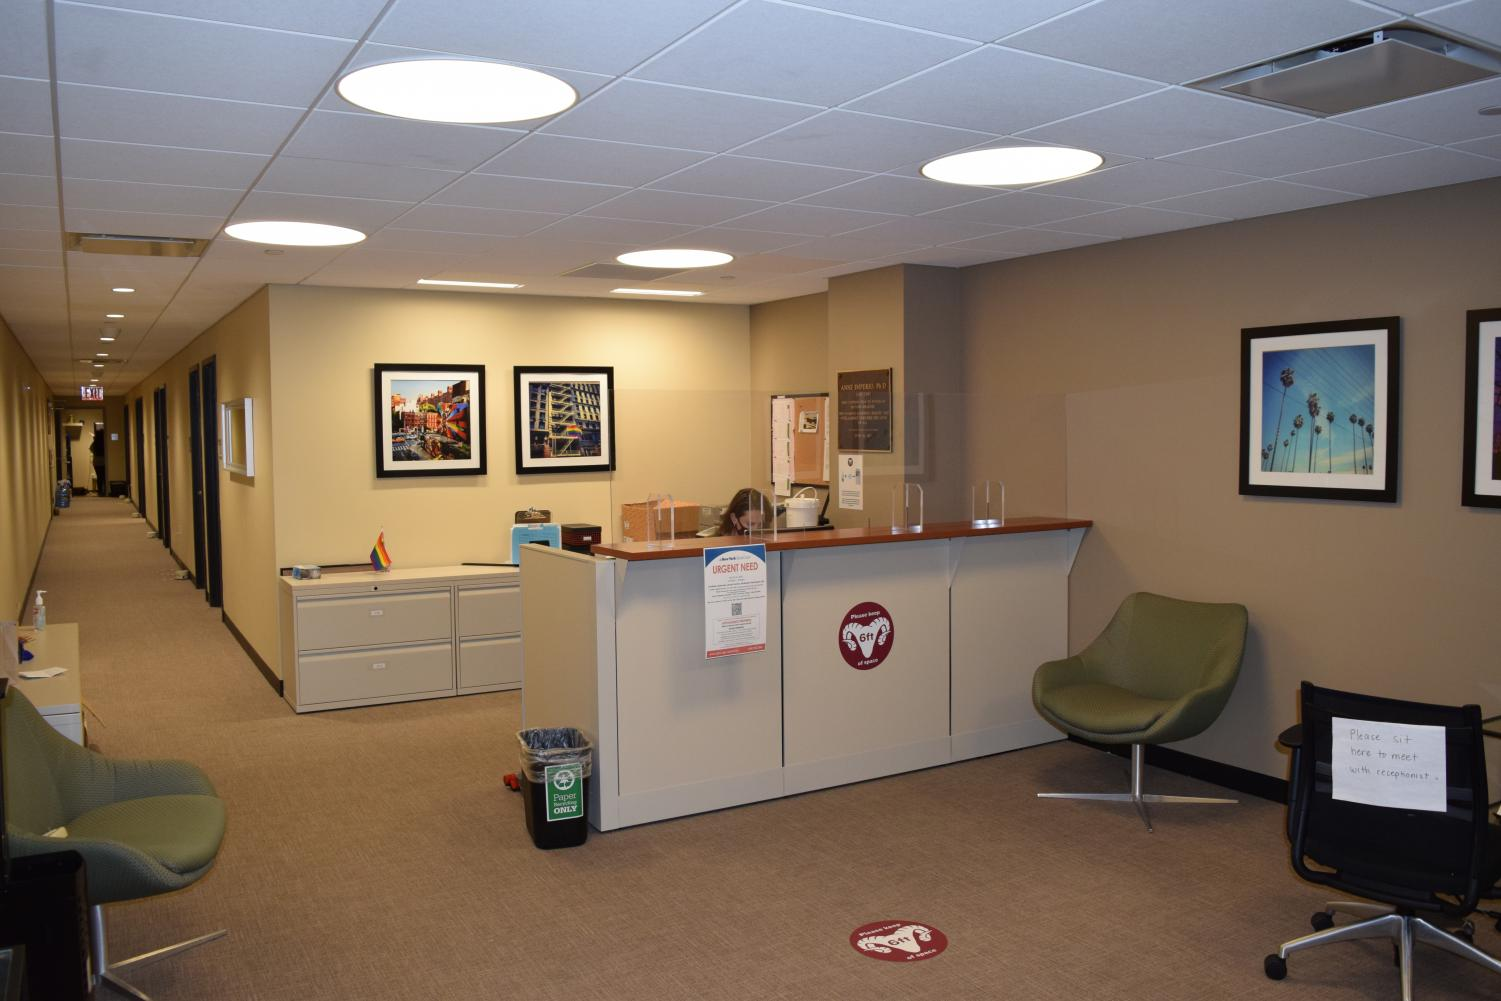 for an article about mental health, the office of counseling at fordham, with a person sitting at a front desk in a beige room